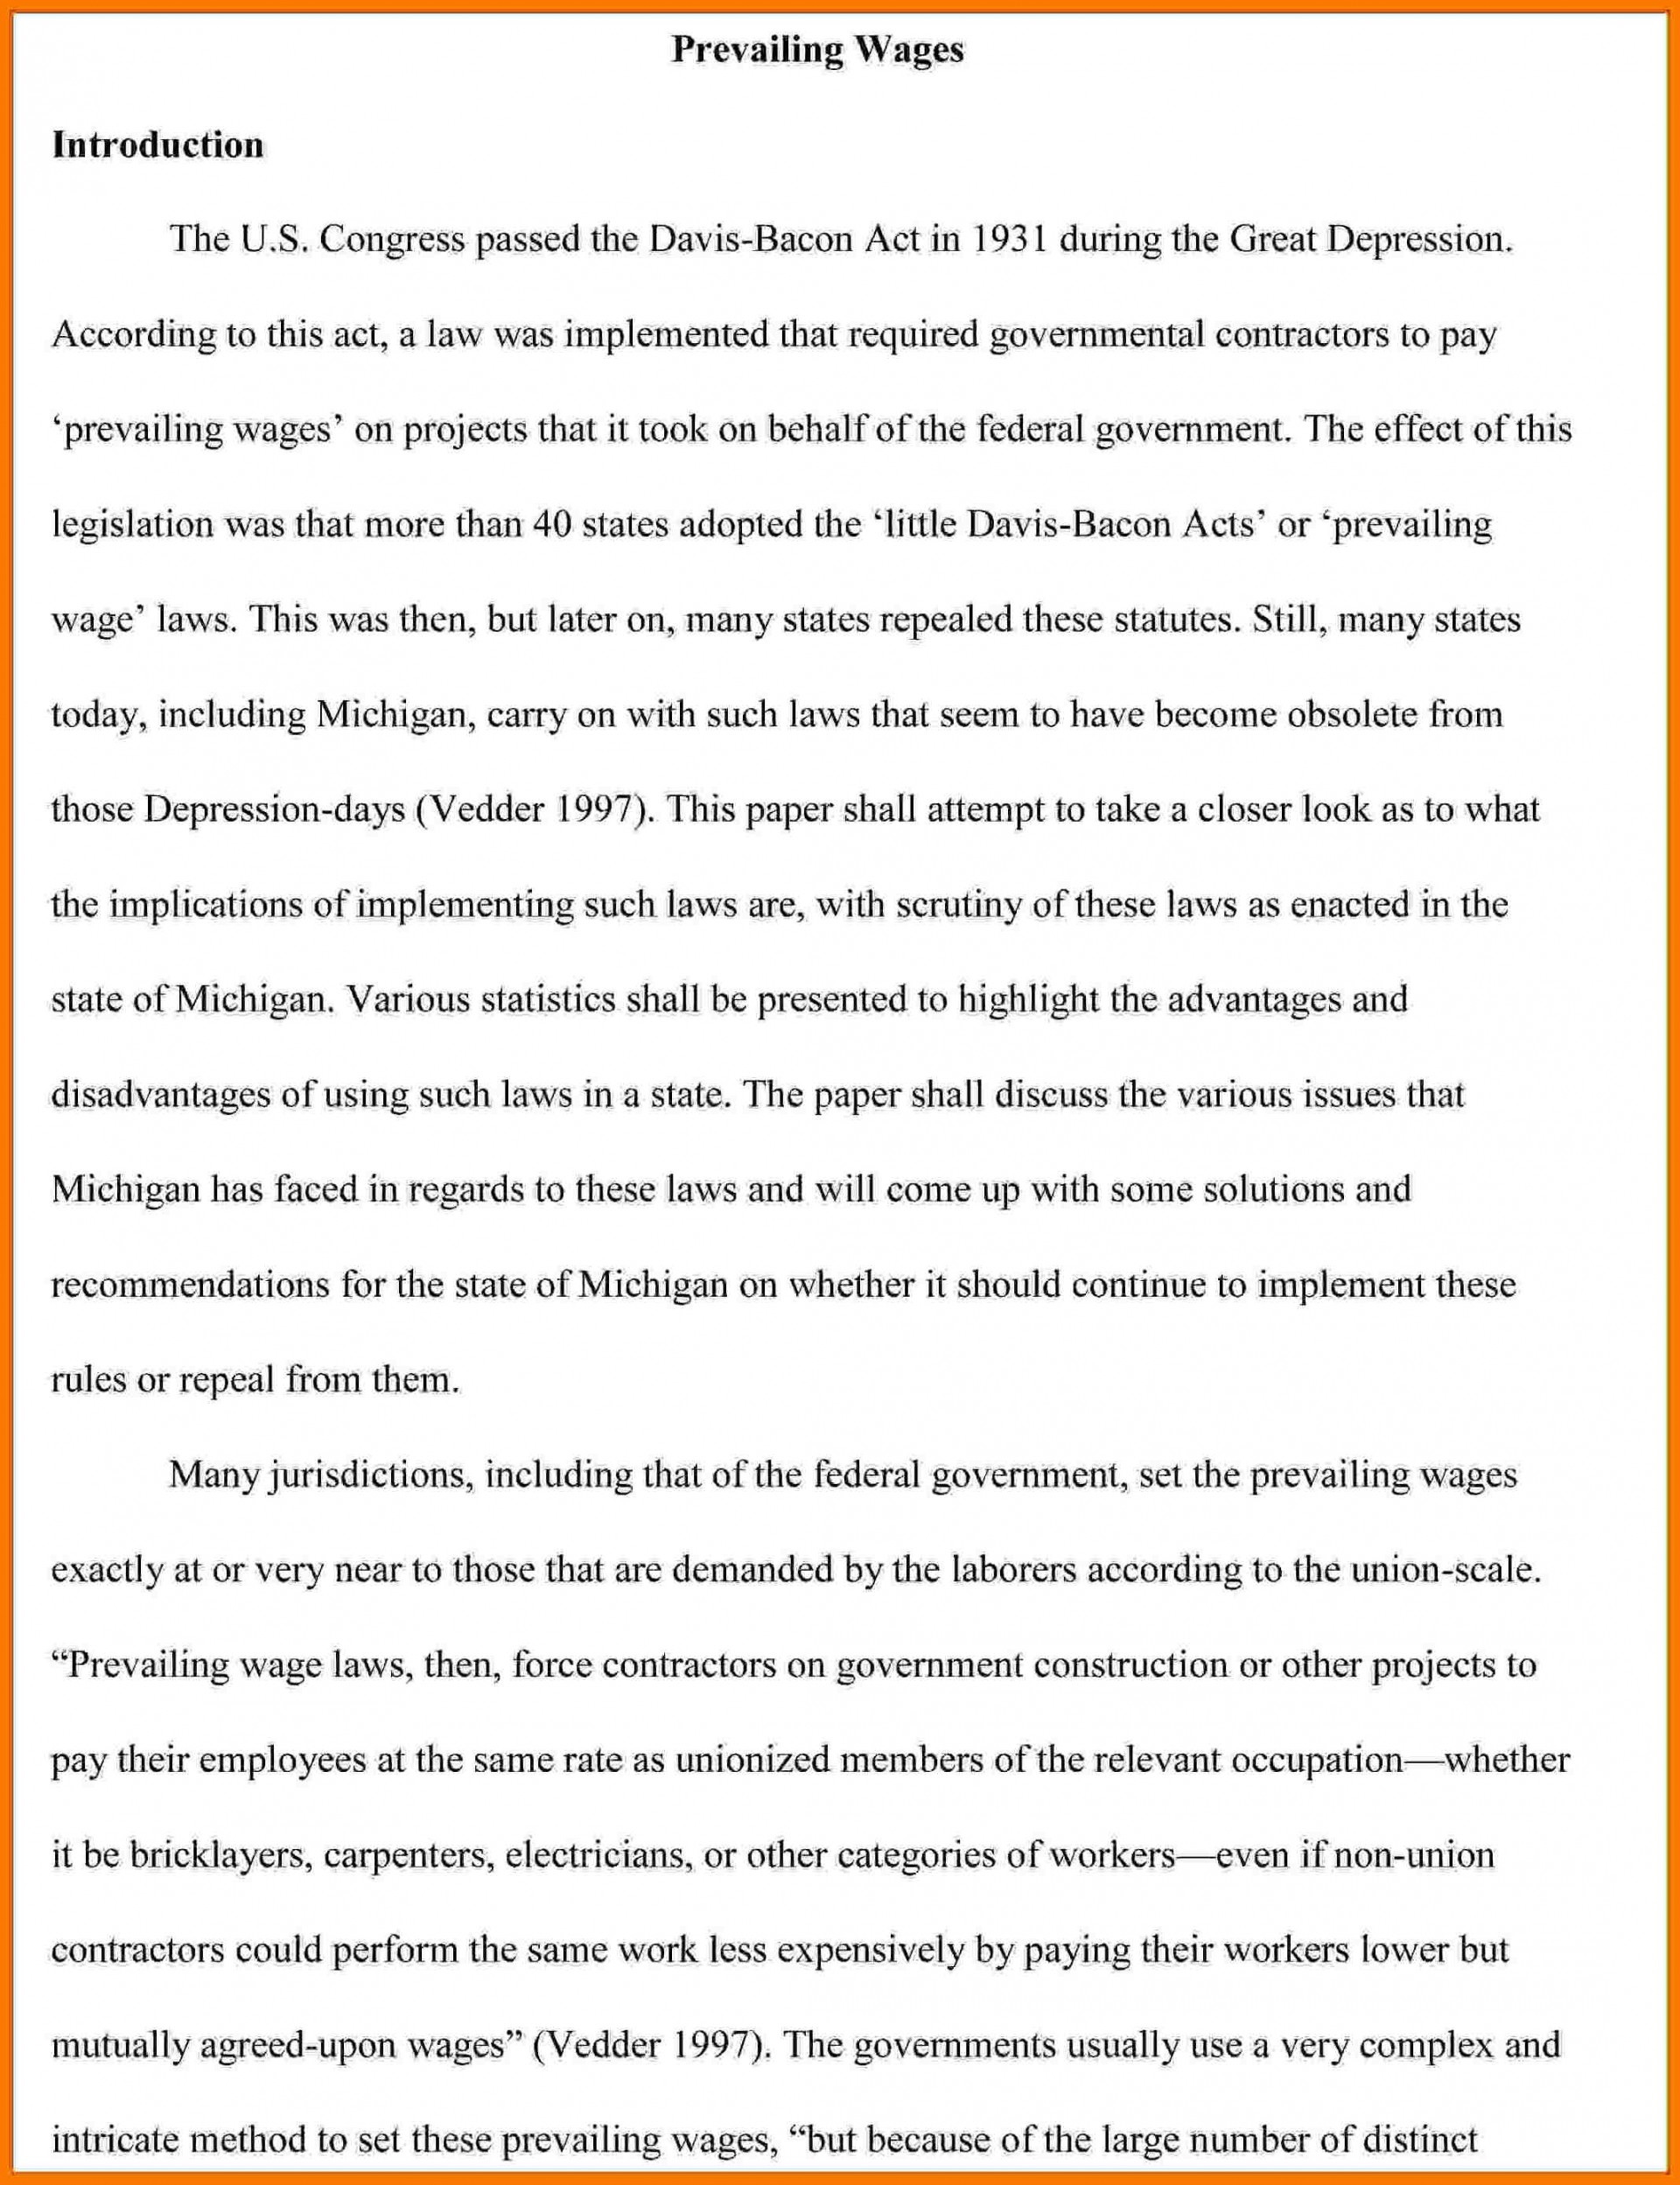 002 Collection Of Solutions Introduction Apa Paper Great Research How To Write Archaicawful For Writing An A Style Sample 1920